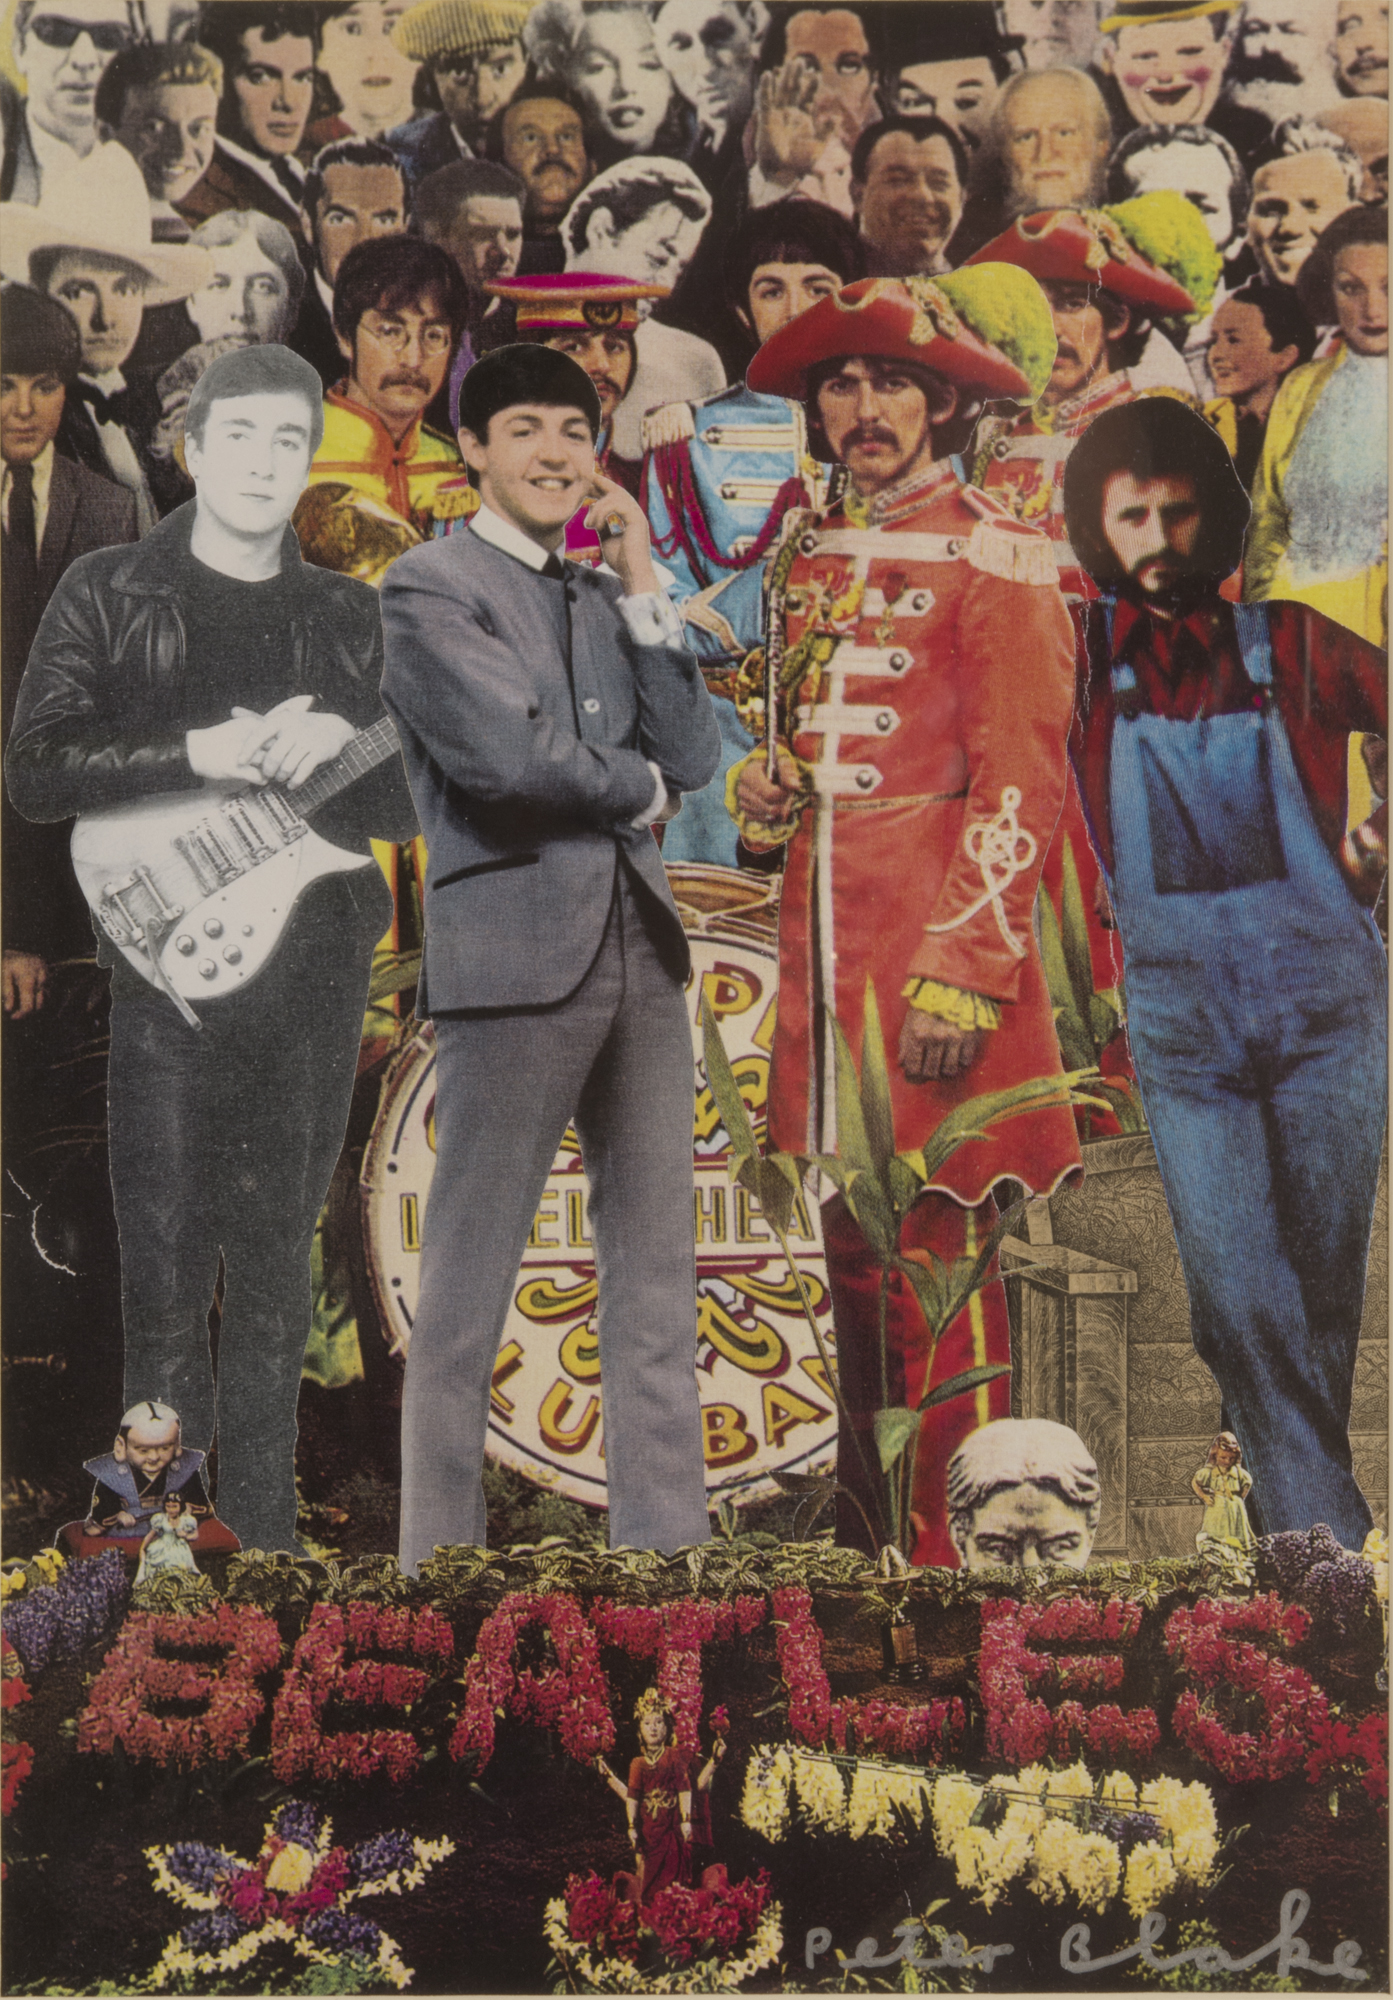 Peter Blake   Cover for 'TV Guide'  USA, 18 November 1995, 1995 Collage 27,8 x 19 cm